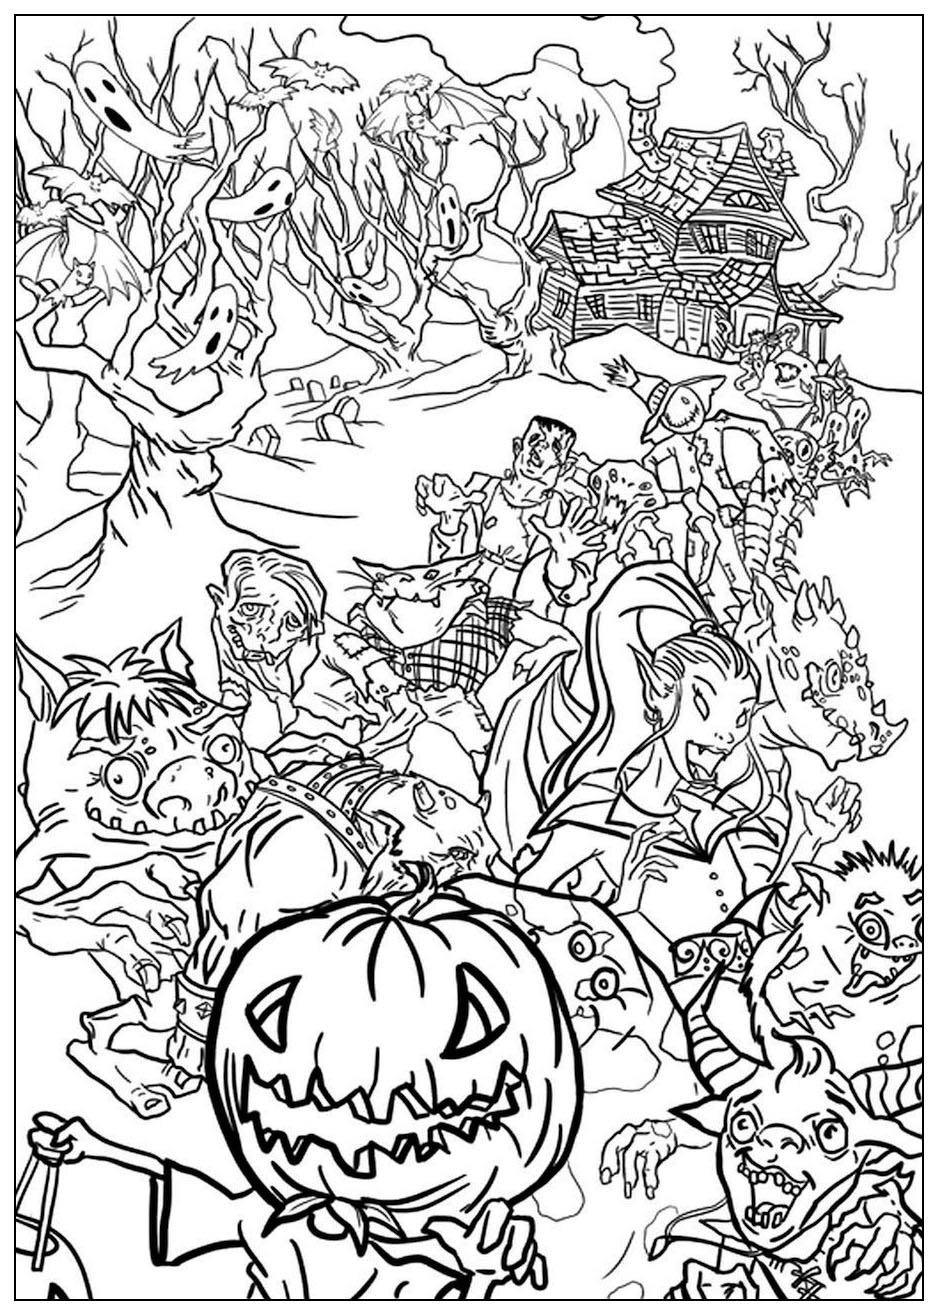 Halloween monsters | Halloween - Coloring pages for adults | JustColor